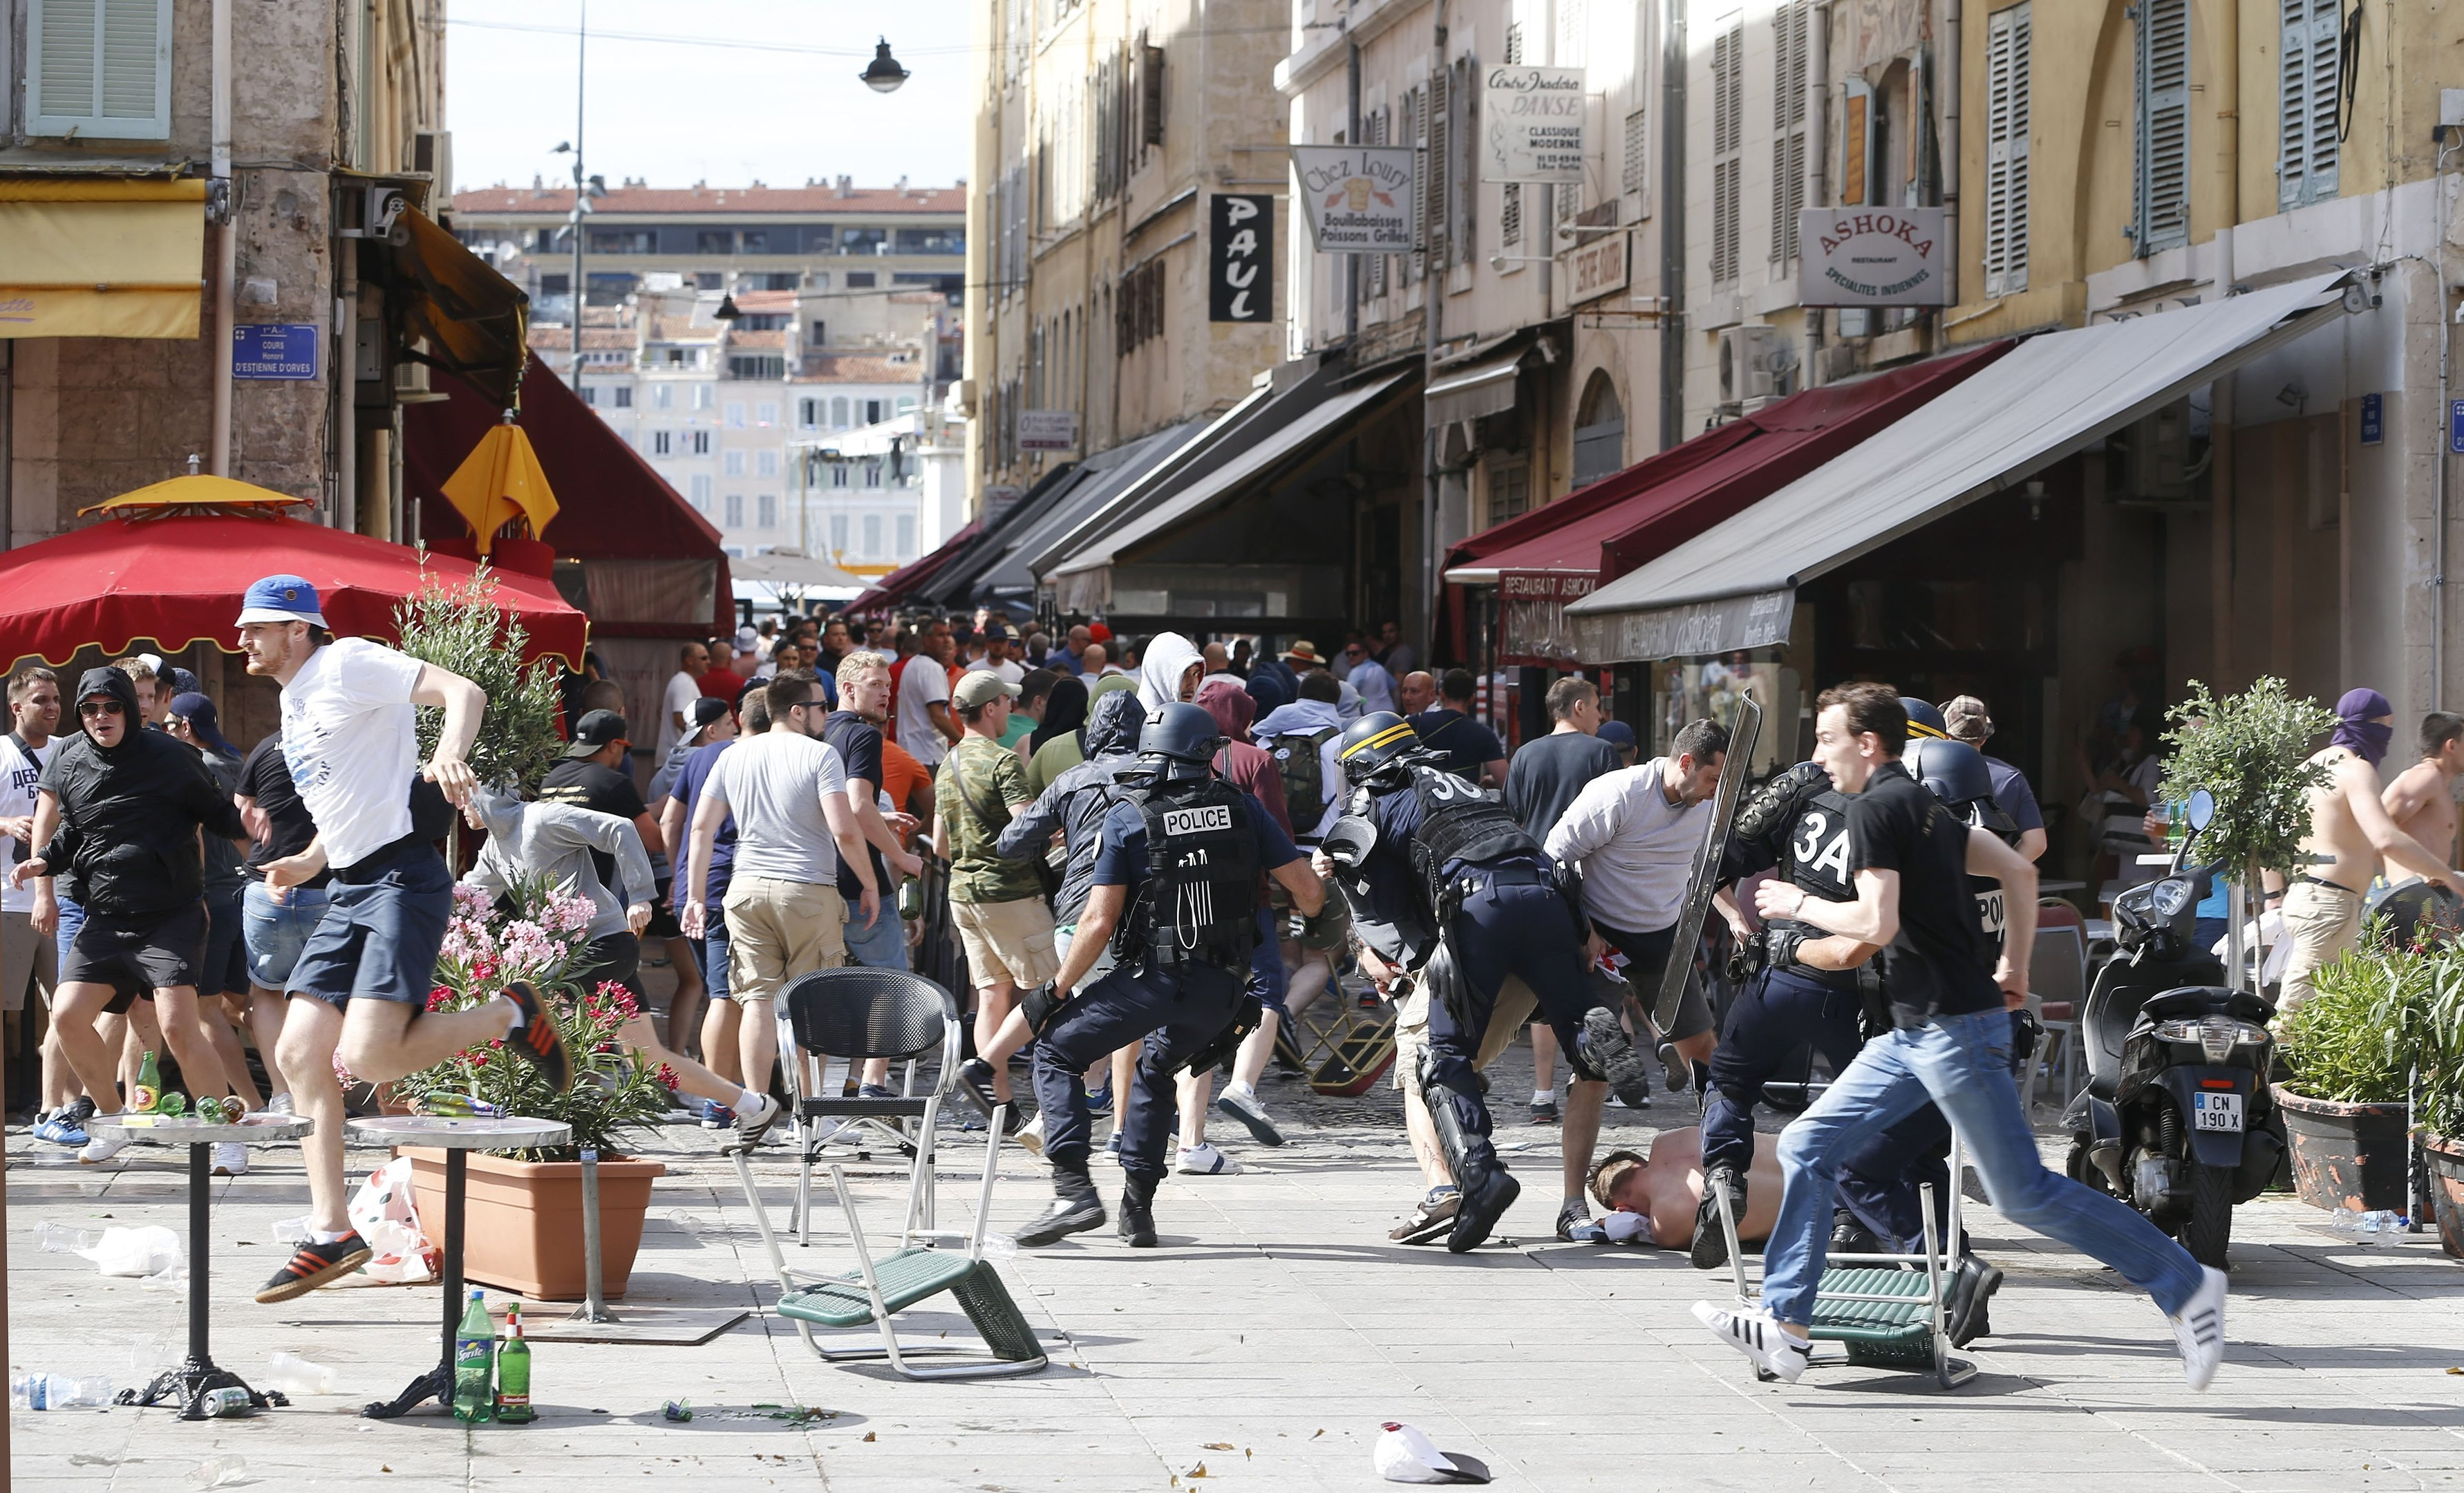 French police officers charge supporters during clashes in downtown Marseille, France (AP Photo/Darko Bandic)